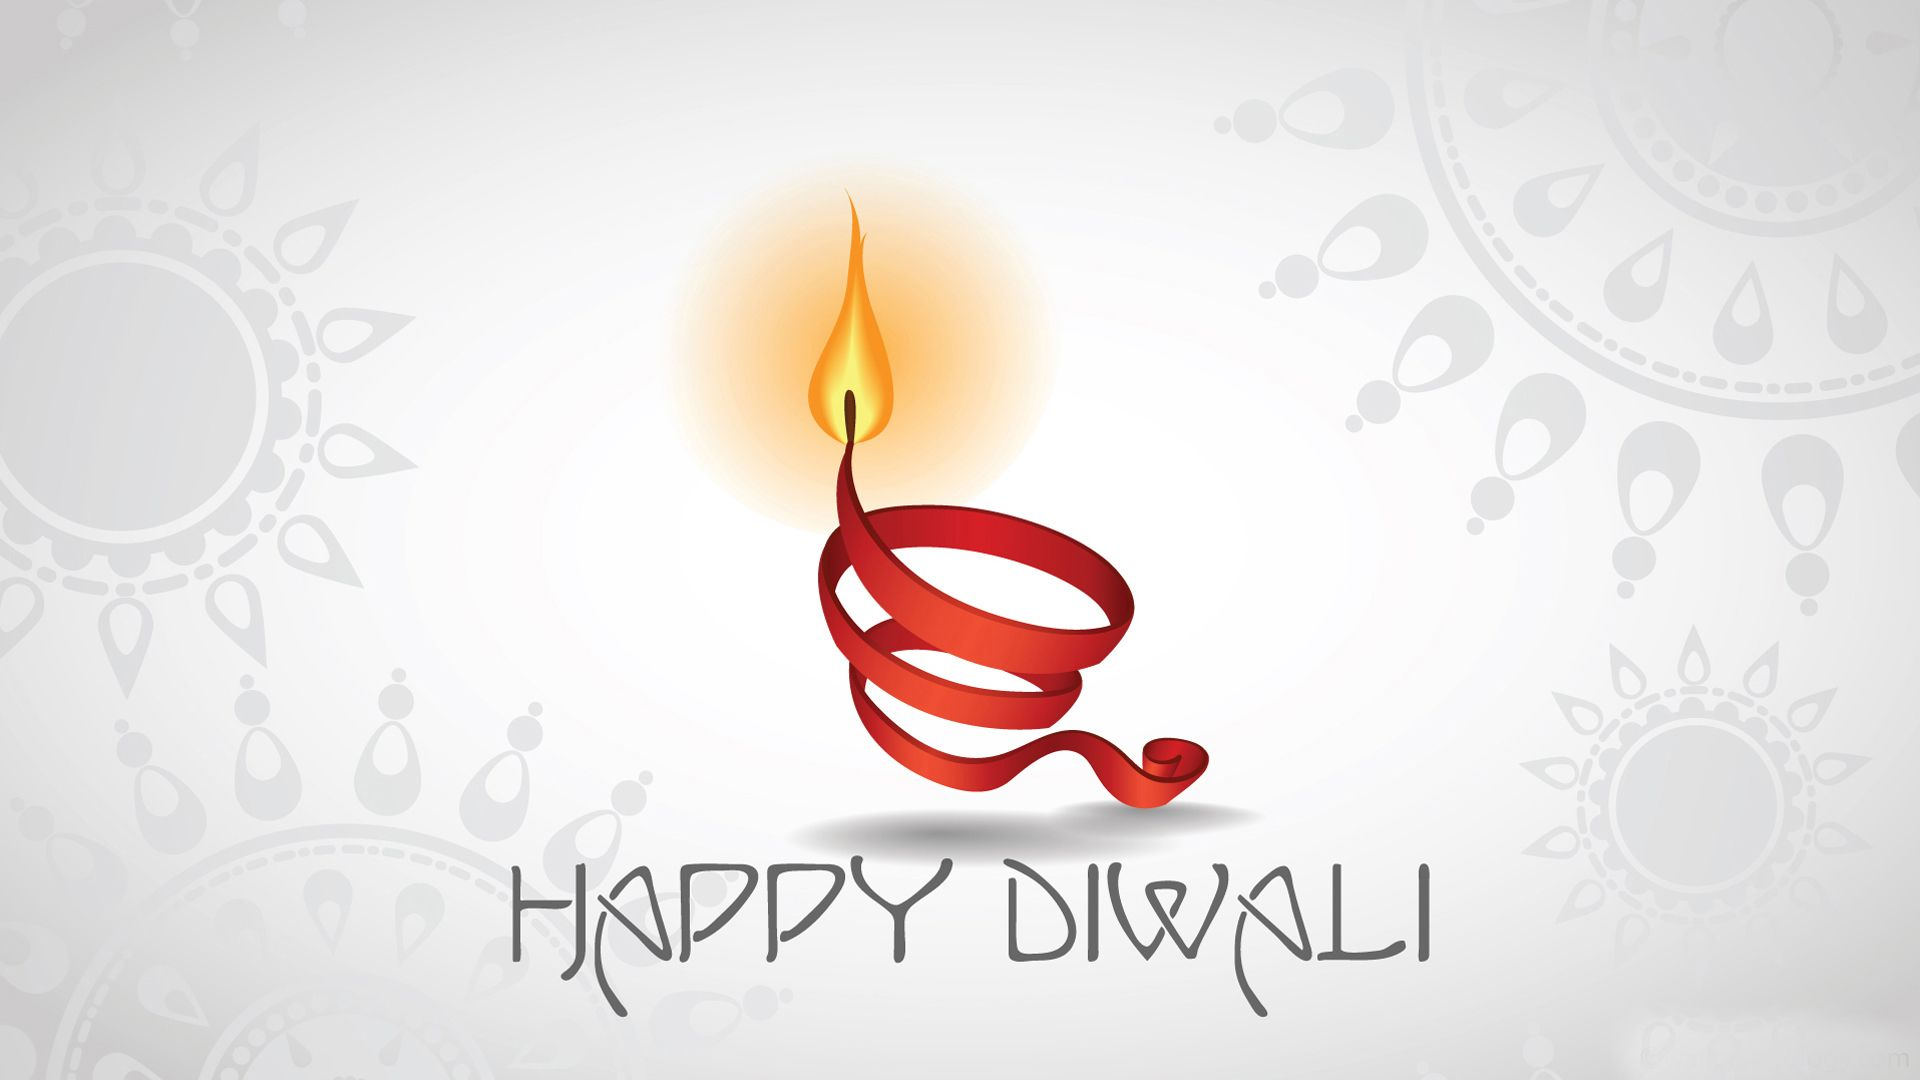 Happy Diwali 2015 Download Free Wallpapers And Greeting Cards Happy New Year 2016 Happy Diwali Wallpapers Happy Diwali Diwali Wallpaper